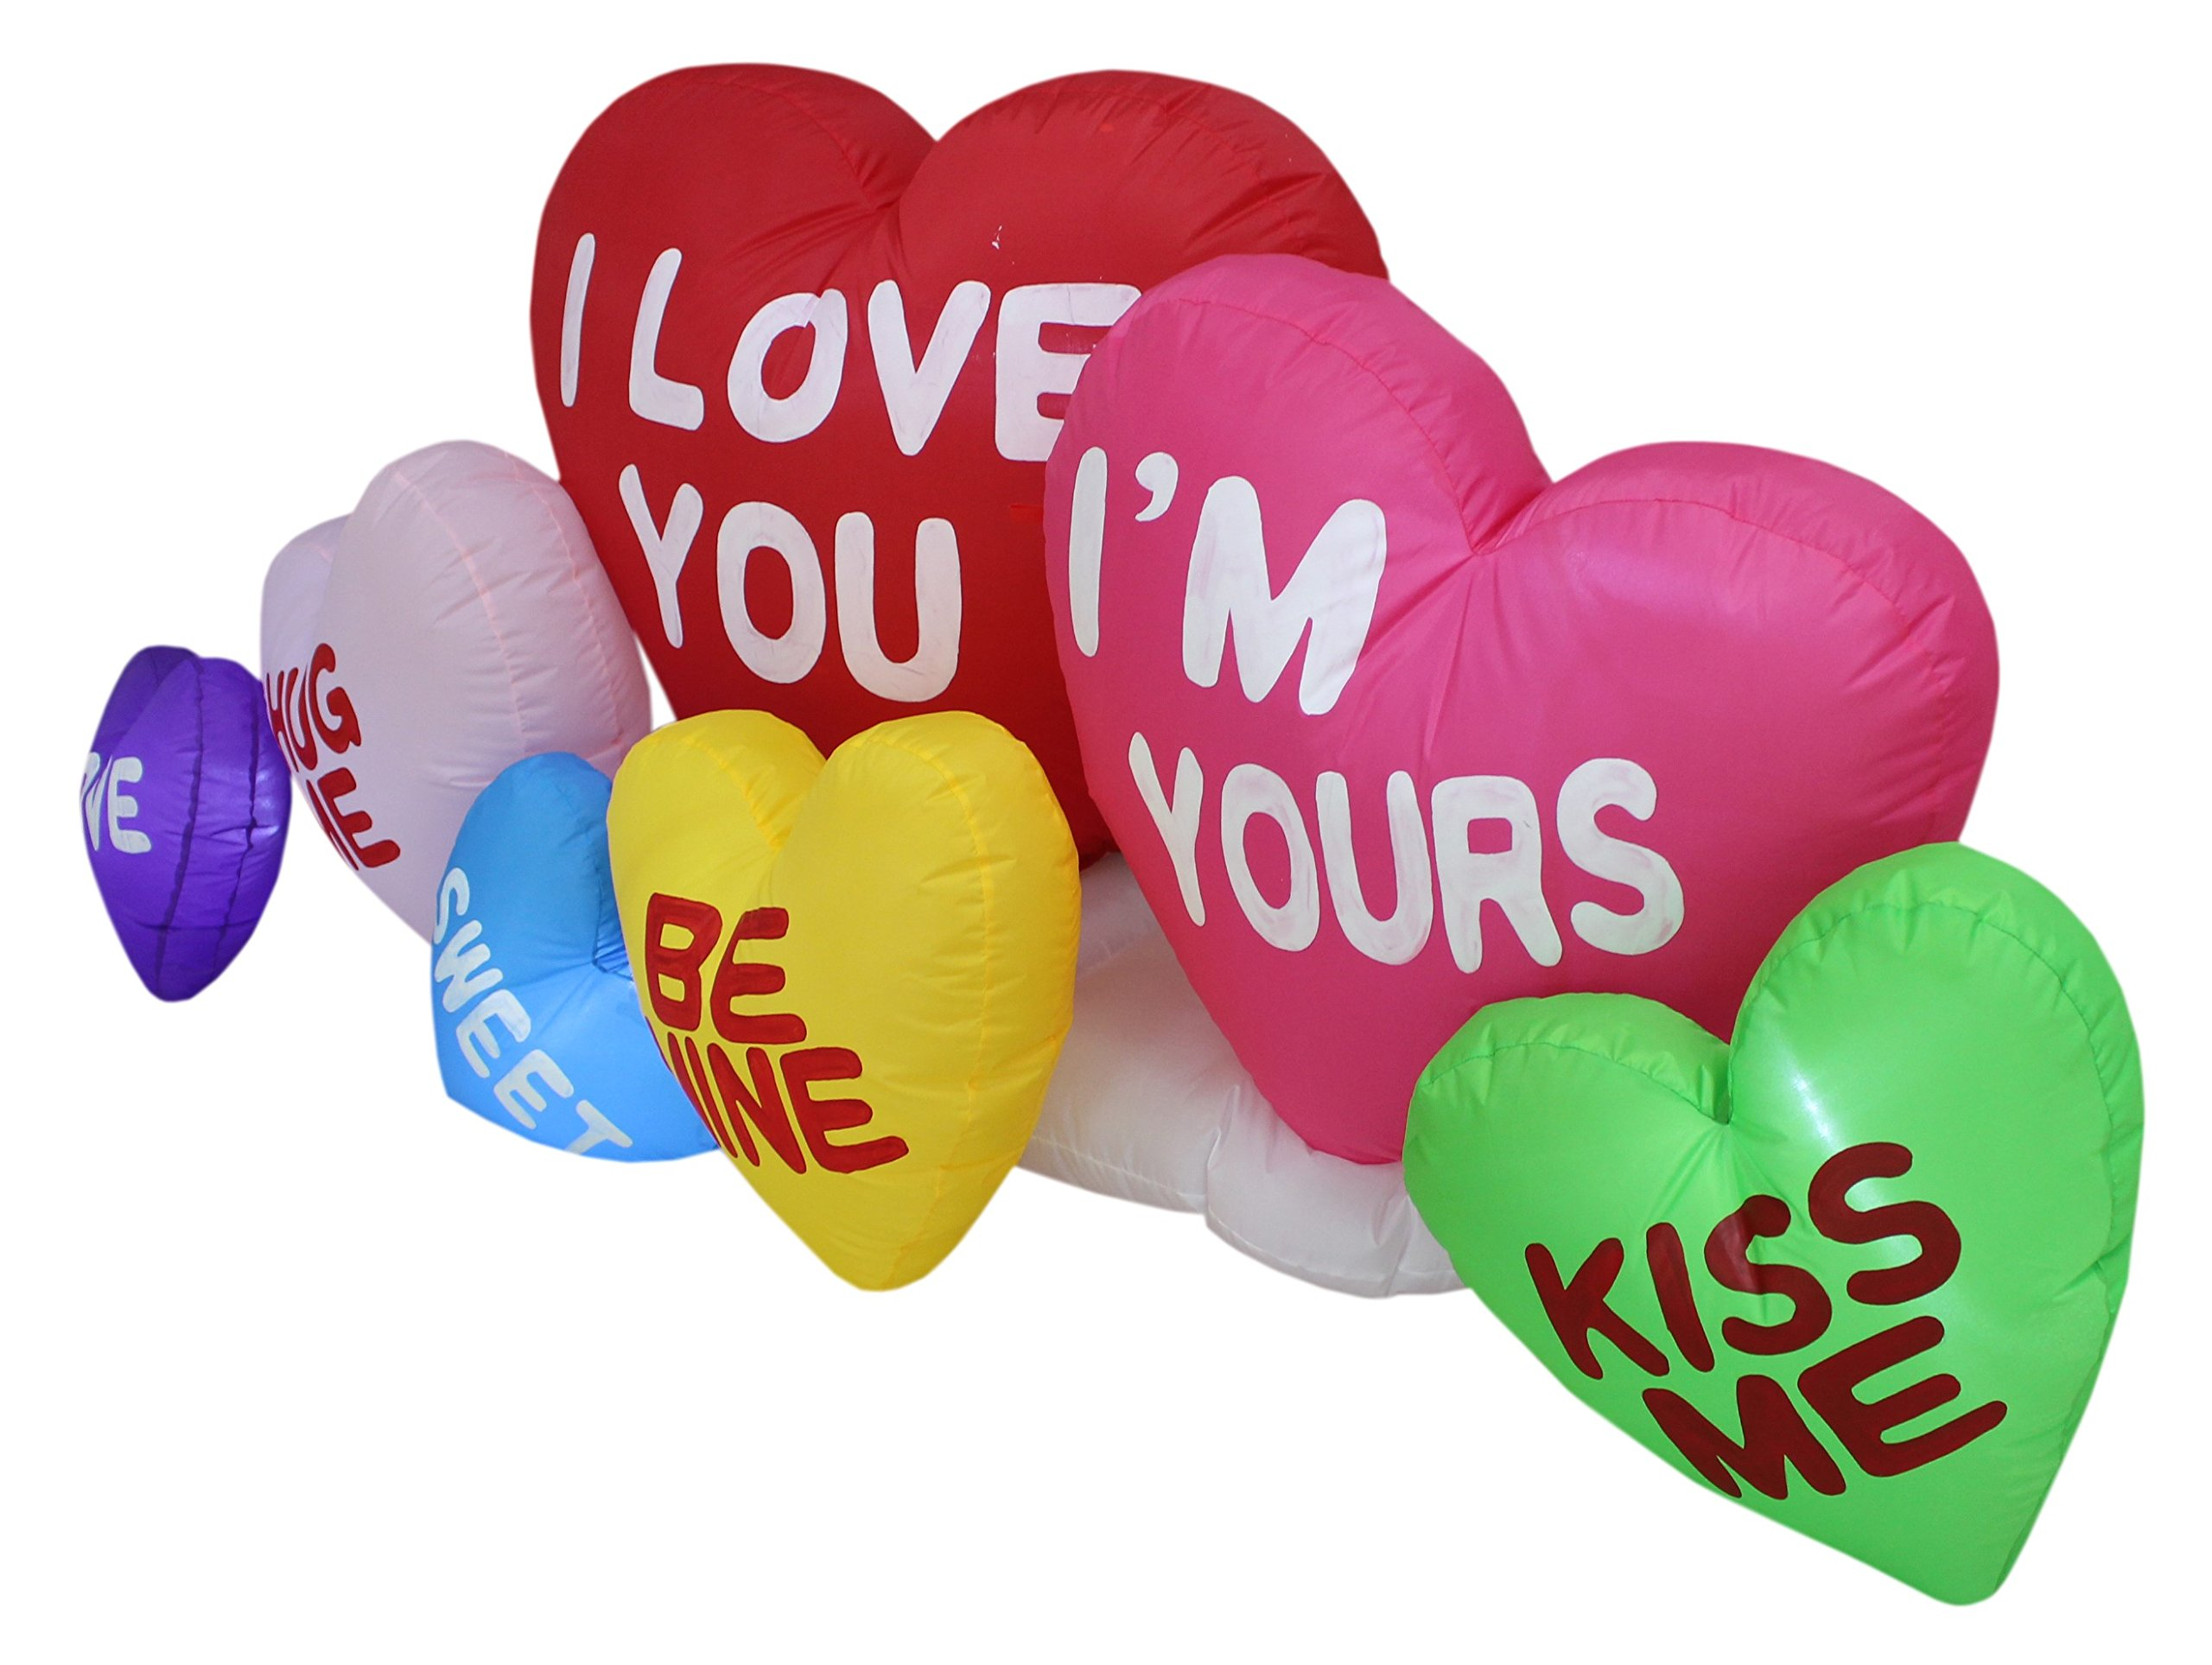 9e57f8f6813f9 BZB Goods 6 Foot Long Valentine's Day Inflatable Love Hearts, Romantic  Sweet Valentines Gift for Couples, Idea LED Lights Decor Outdoor Indoor  Holiday ...